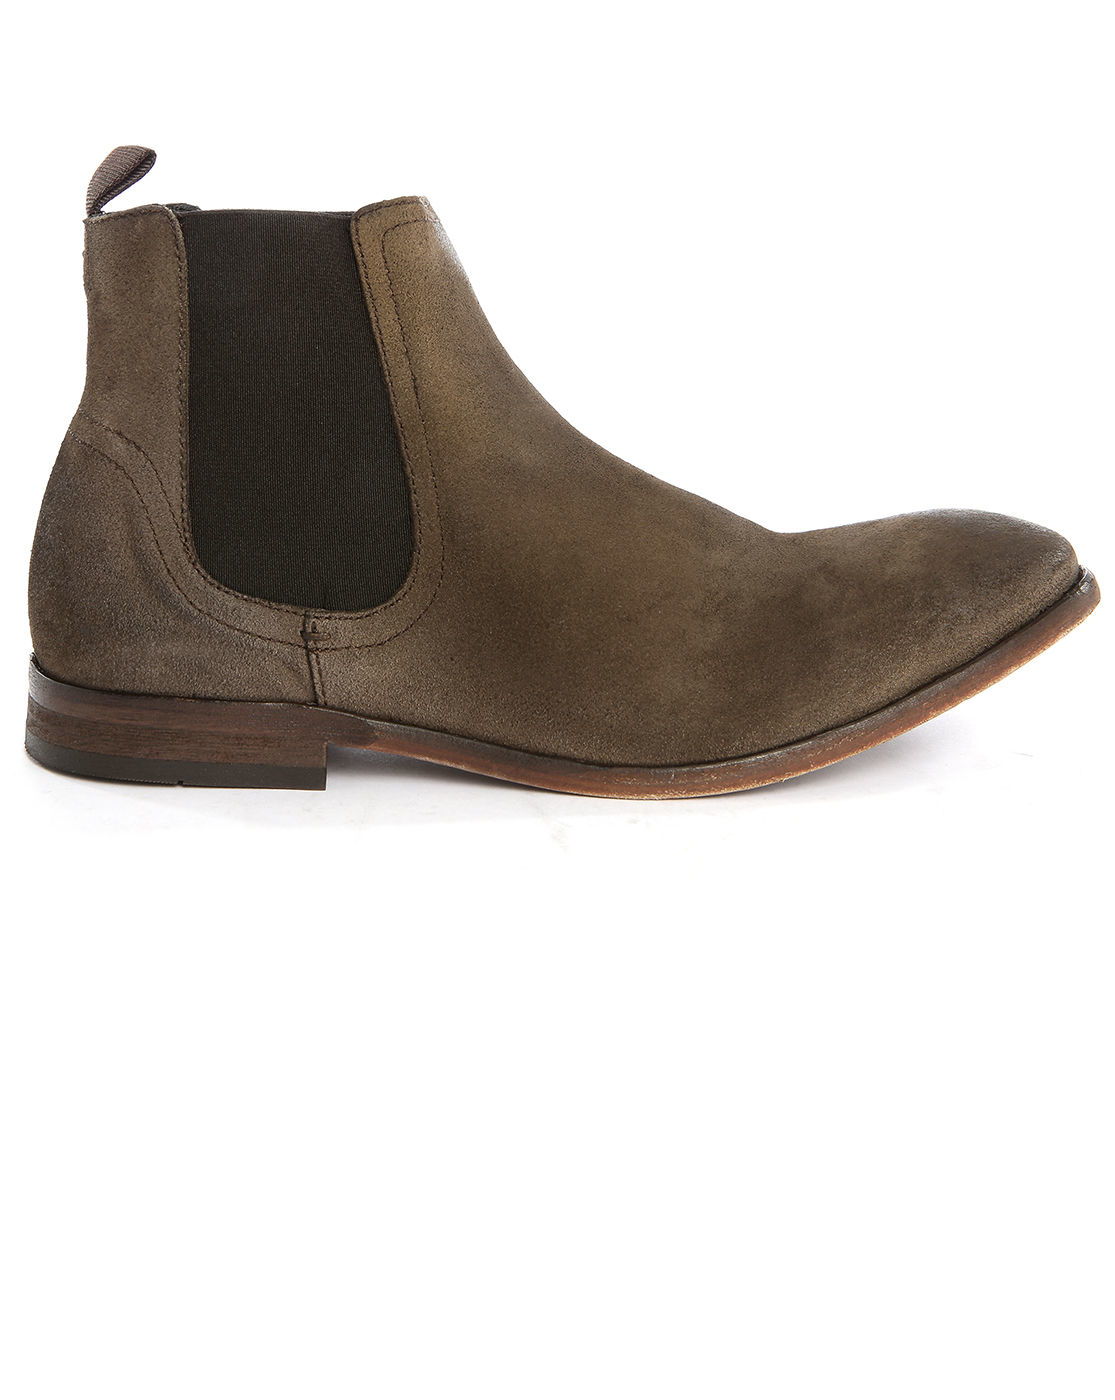 While the Chelsea boot is a style that's over years old, it's become a contemporary favorite for guys today. The boot's inherent simplicity lends itself well to a variety of looks, and if the.